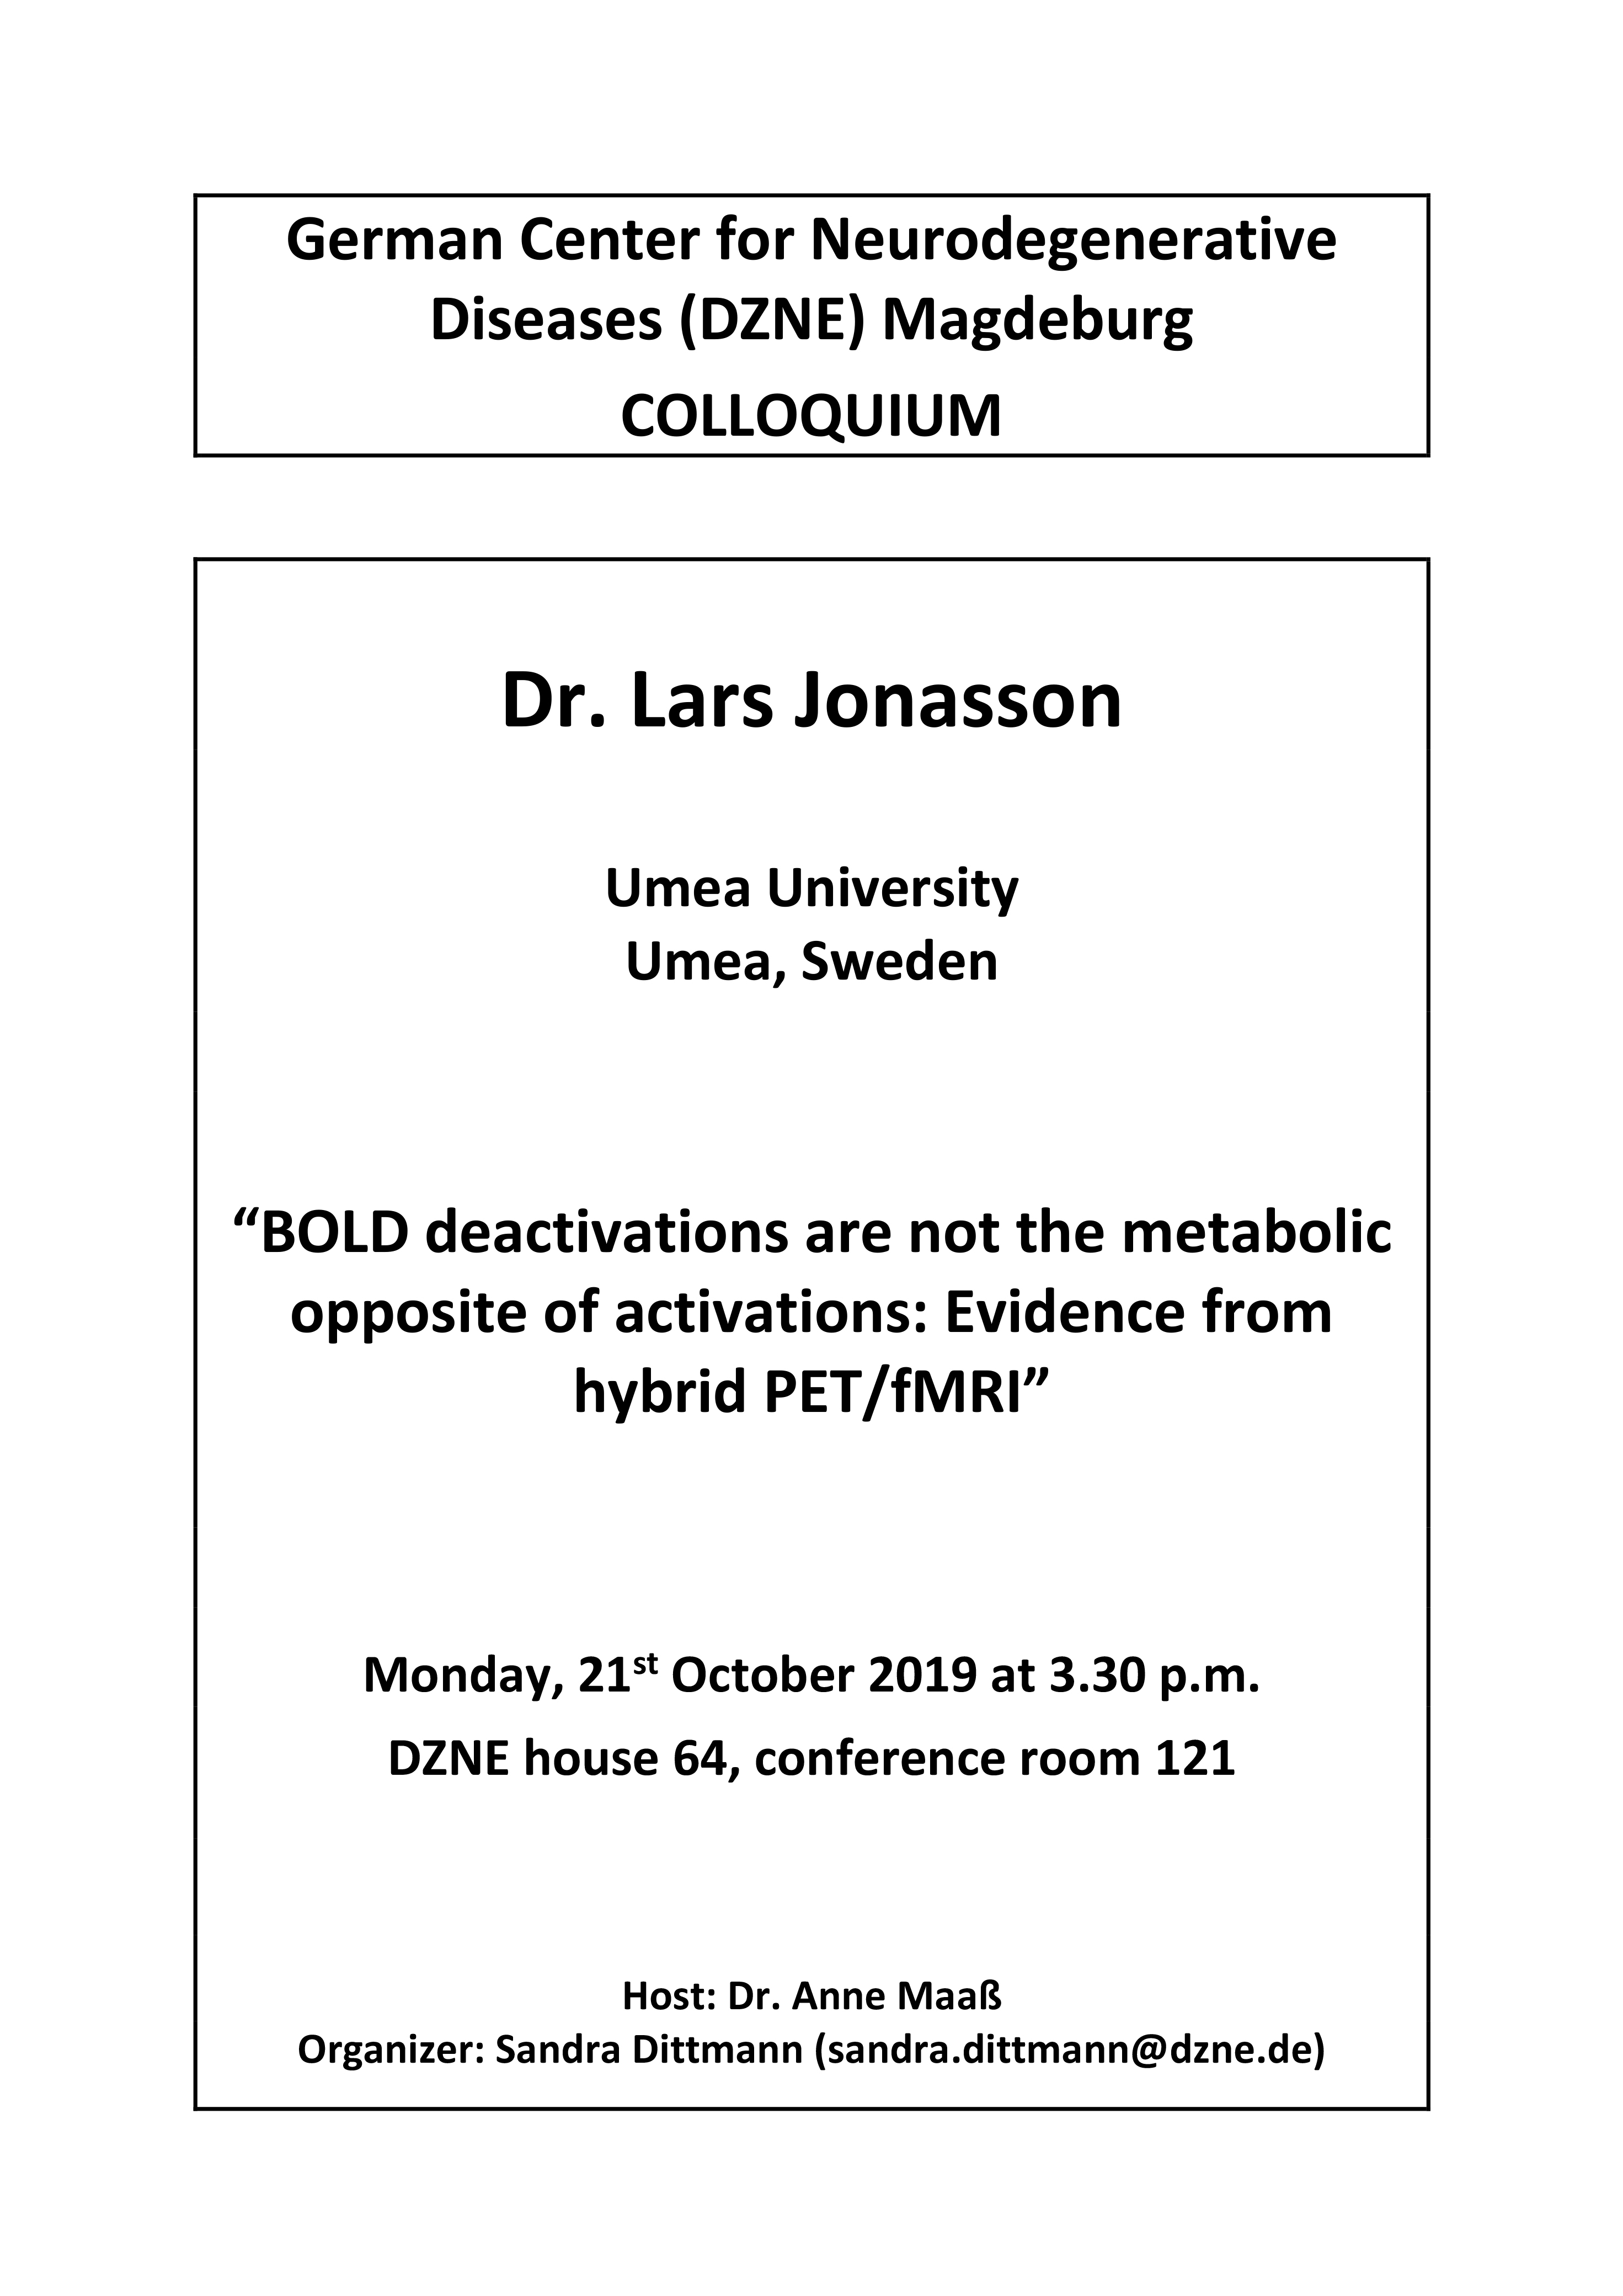 DZNE Colloquium: BOLD deactivations are not the metabolic opposite of activations: Evidence from hybrid PET/fMRI @ DZNE house 64, conference room 121